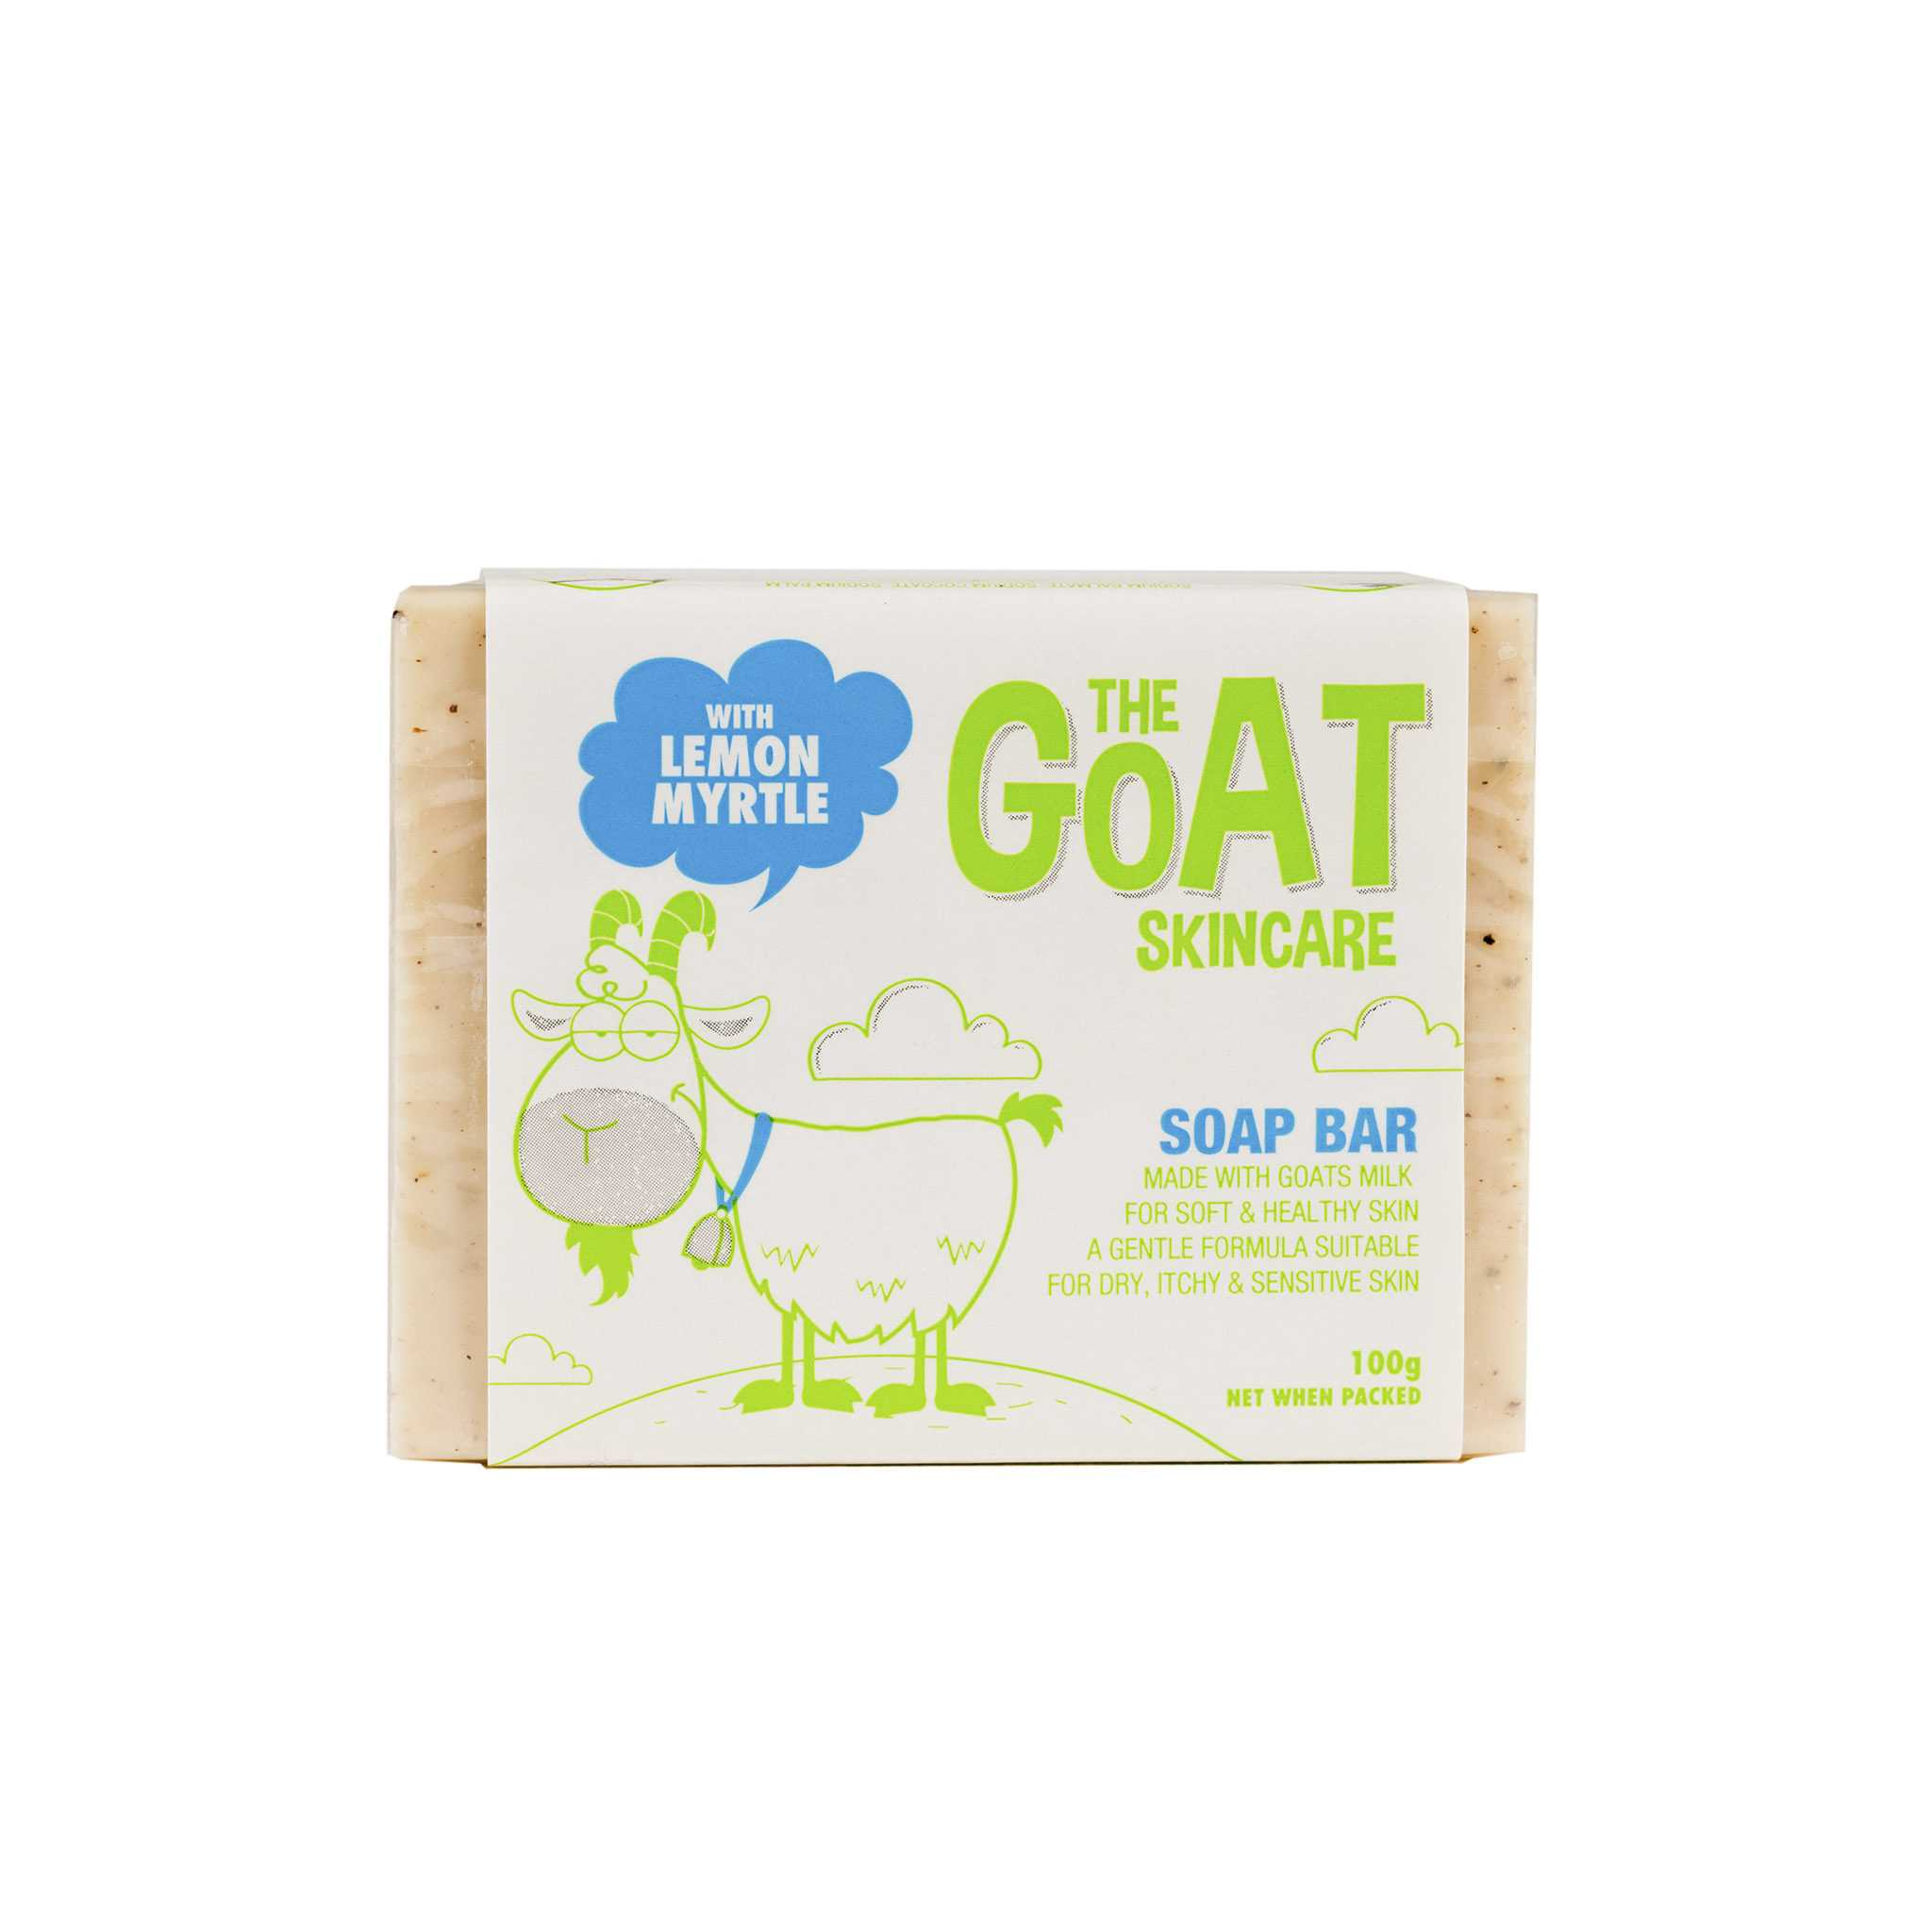 The Goat Skincare Soap Bar - Lemon Myrtle